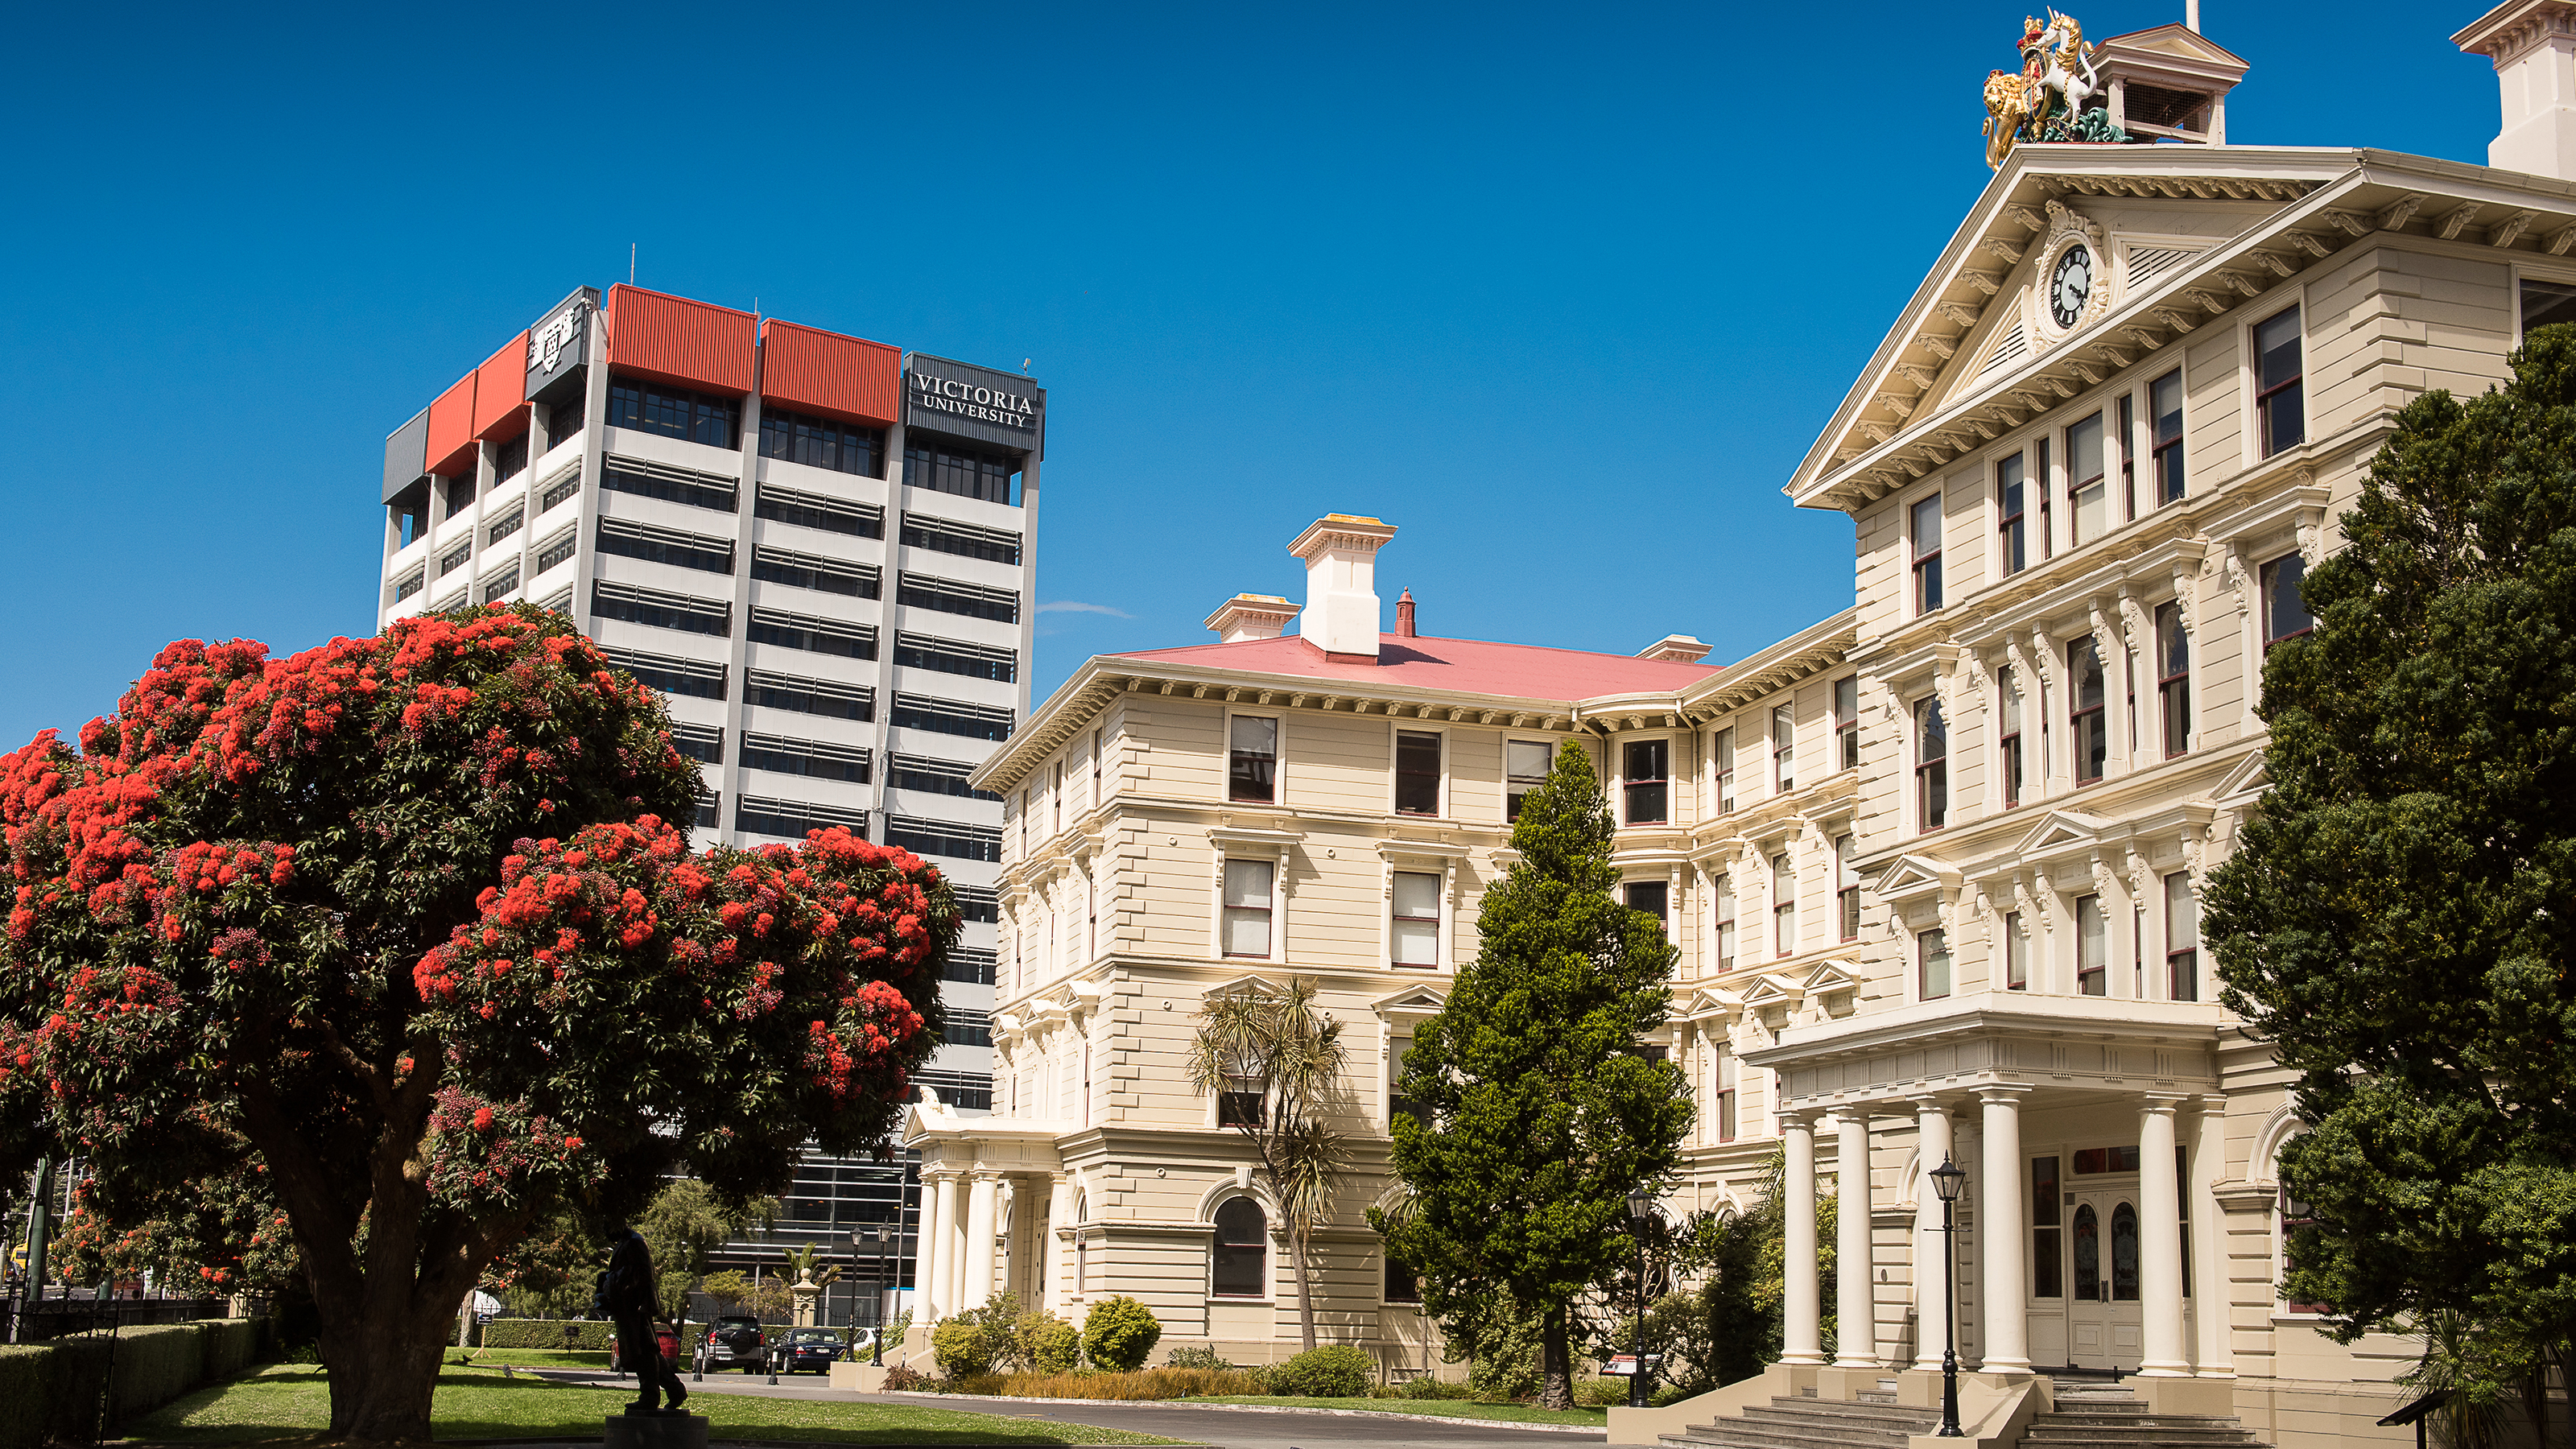 Old Government Buildings on a clear summer's day, with Rutherford House behind and the flame gum tree in full bloom